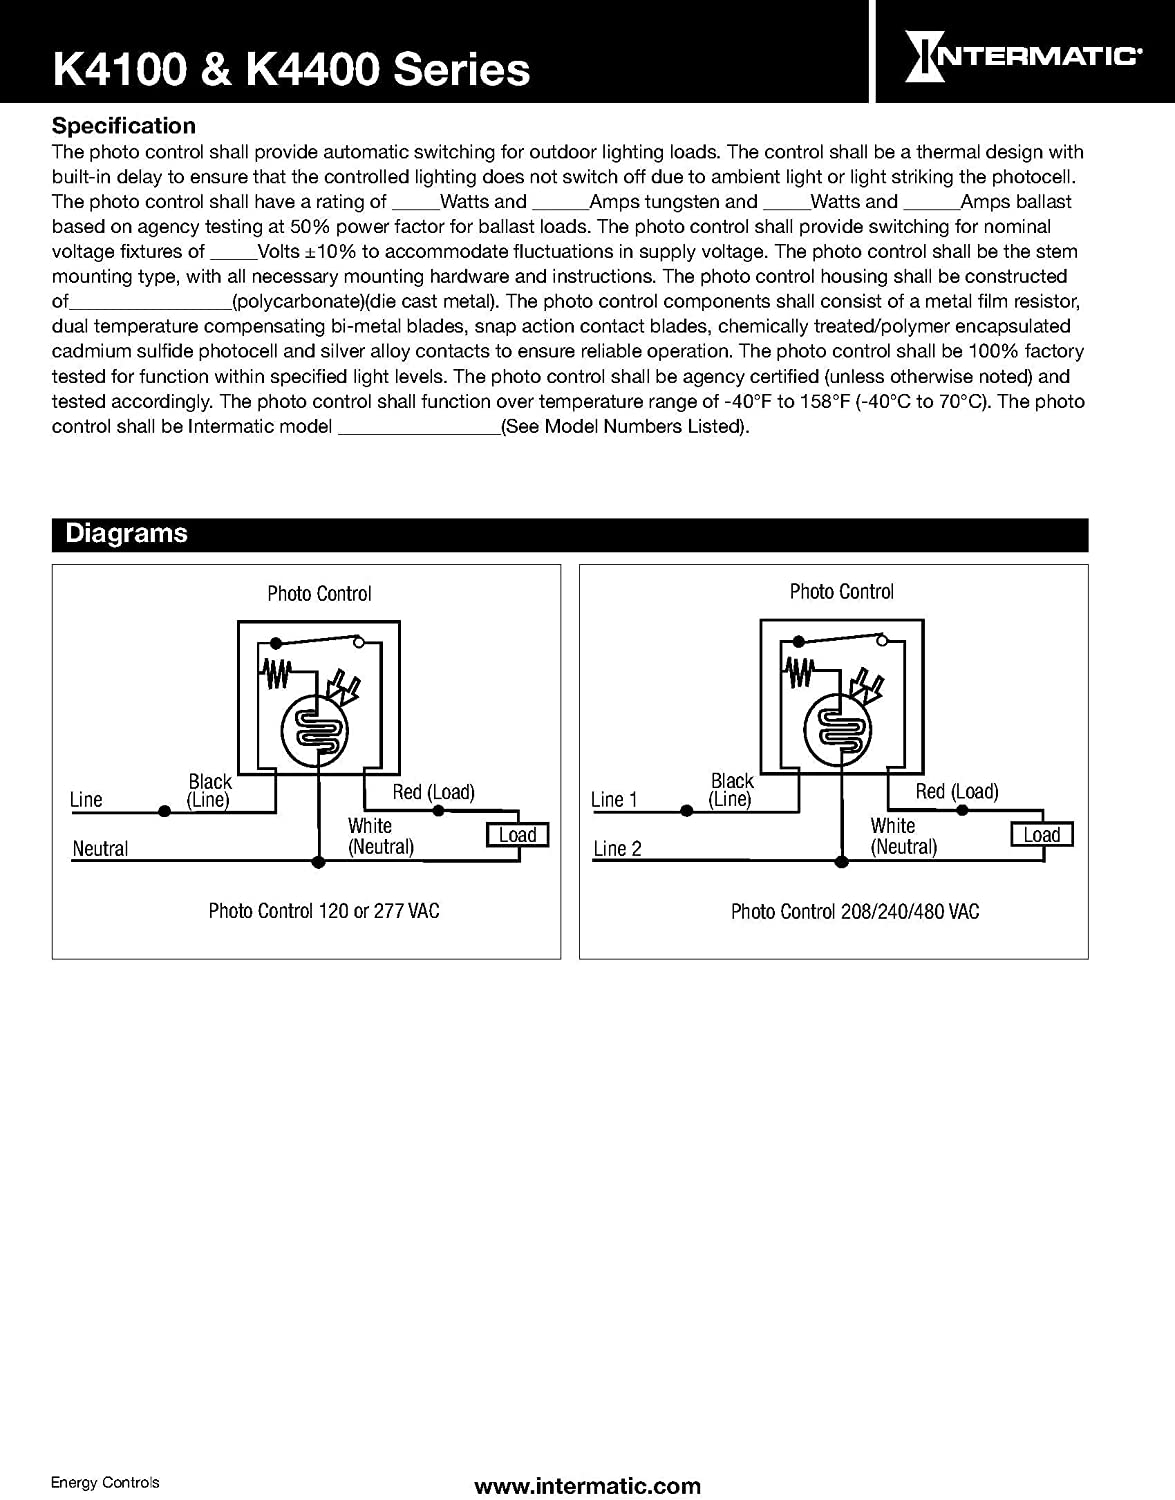 Intermatic Photocell Wiring Diagram from images-na.ssl-images-amazon.com